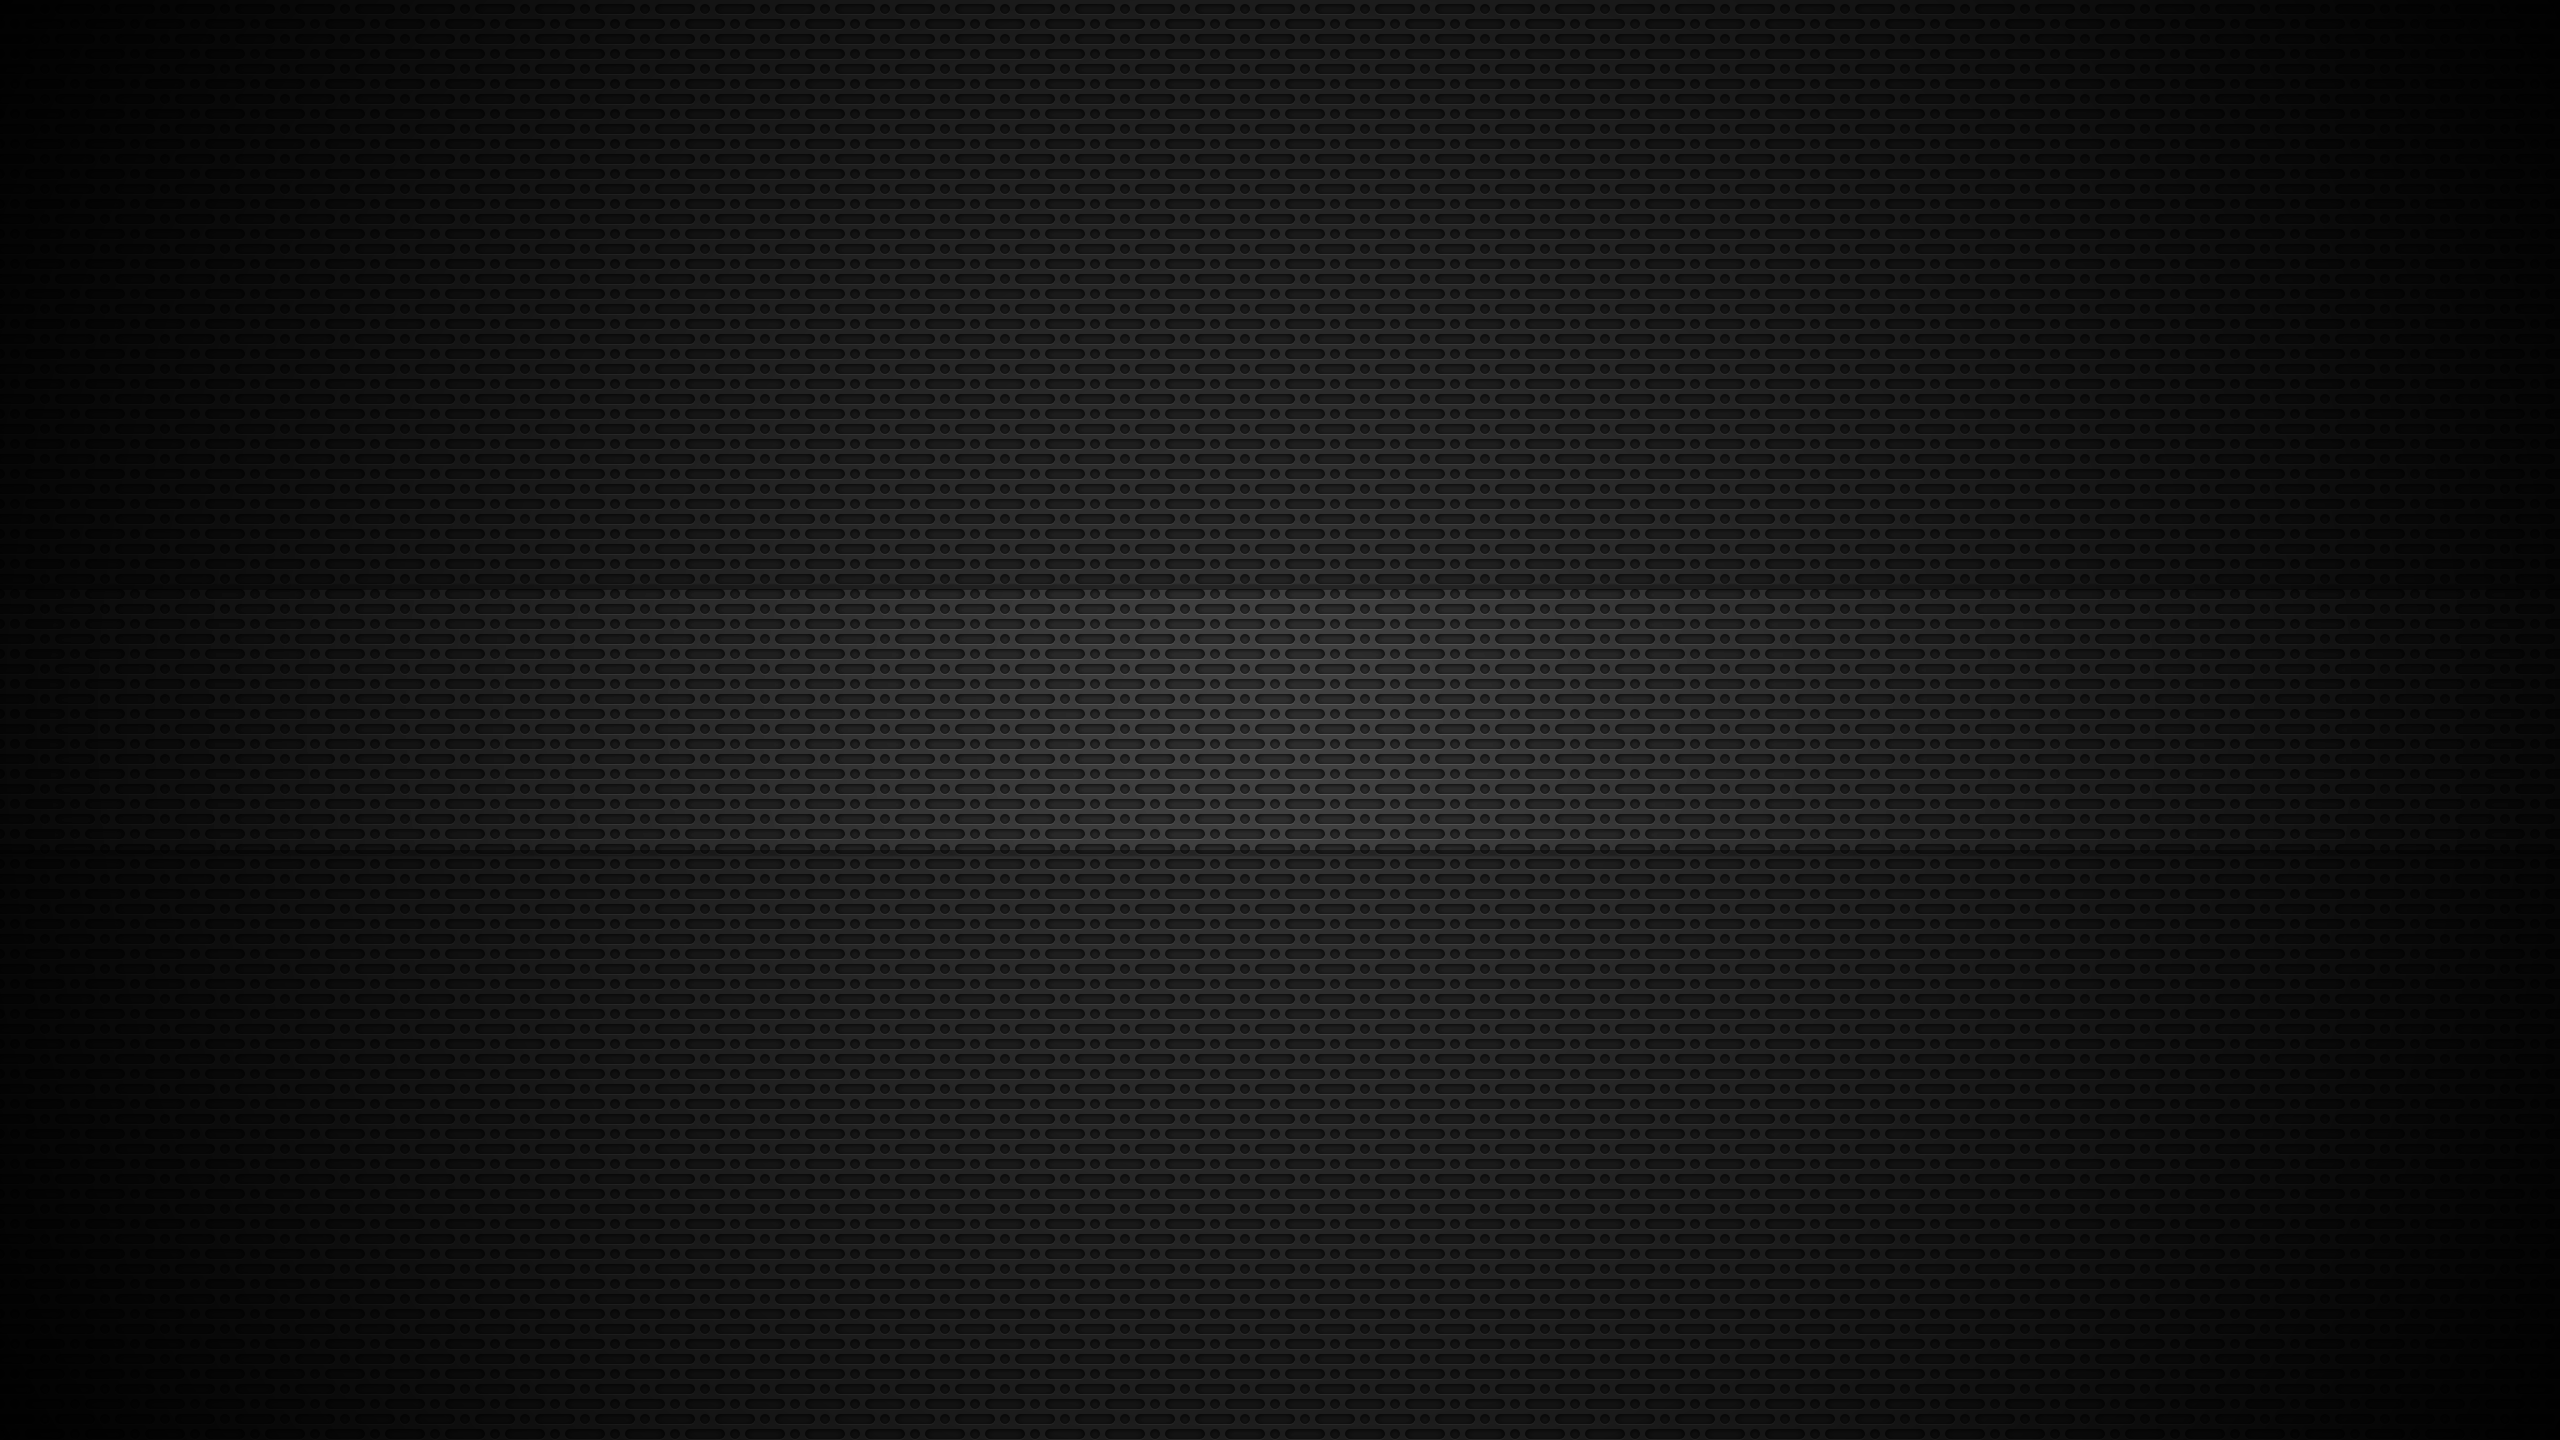 Youtube wallpaper 2048x1152 wallpapersafari for Cool youtube channel art templates